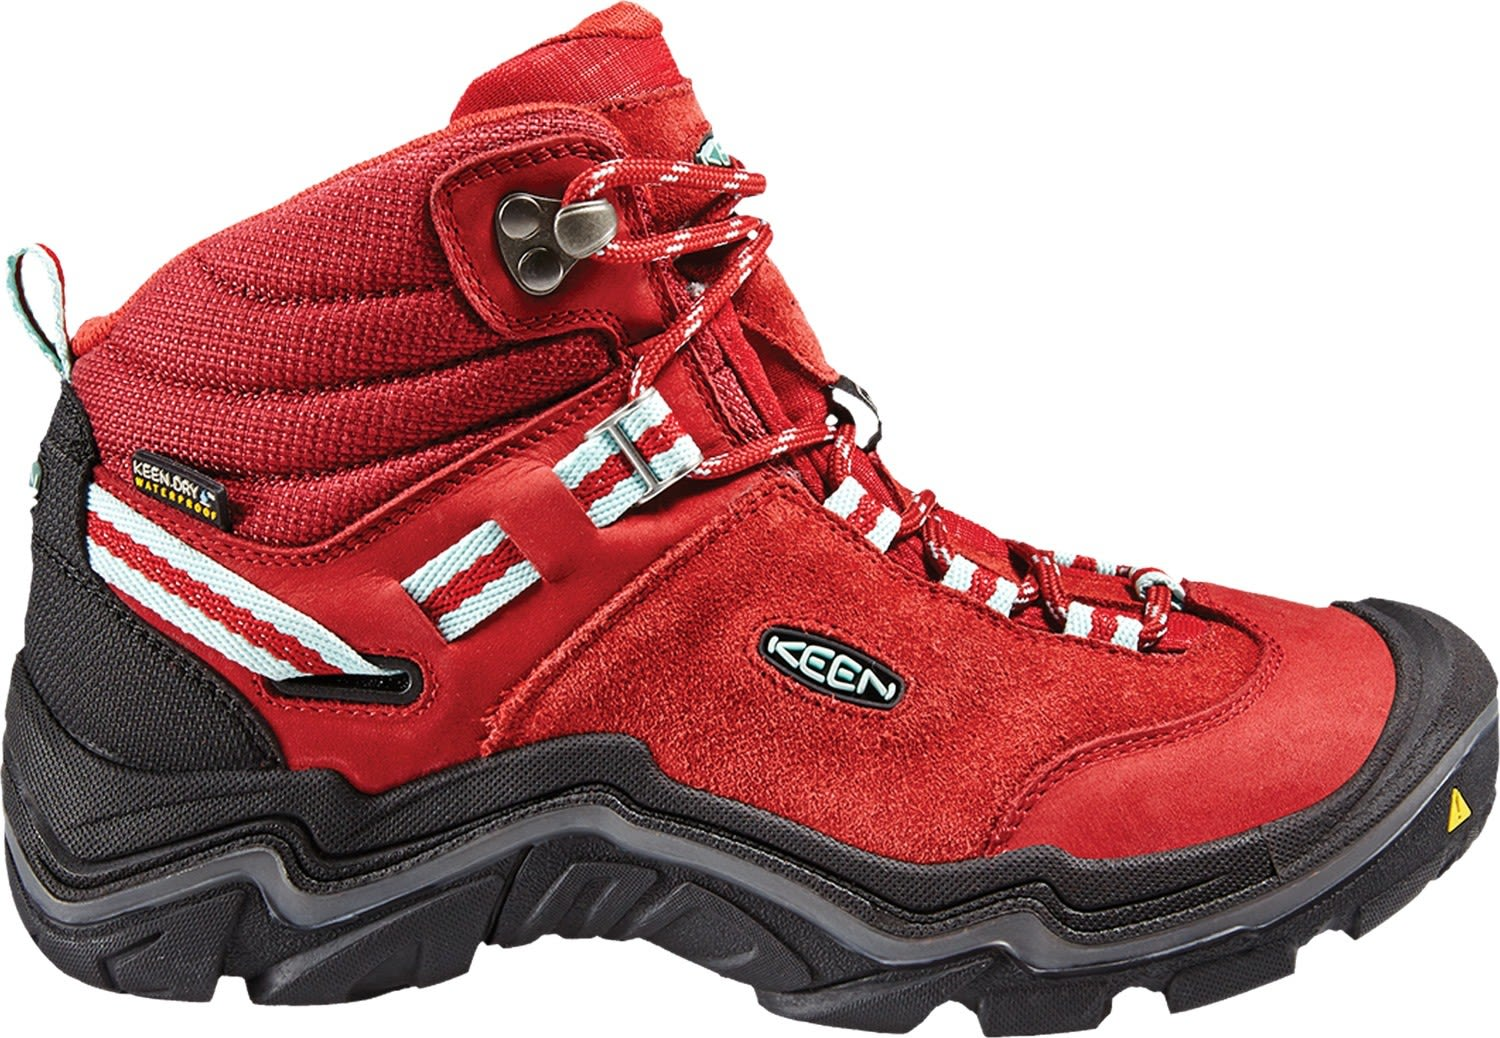 Keen Wanderer Mid Waterproof Rot, Female EU 40 -Farbe Chili Pepper -Gargoyle, 40